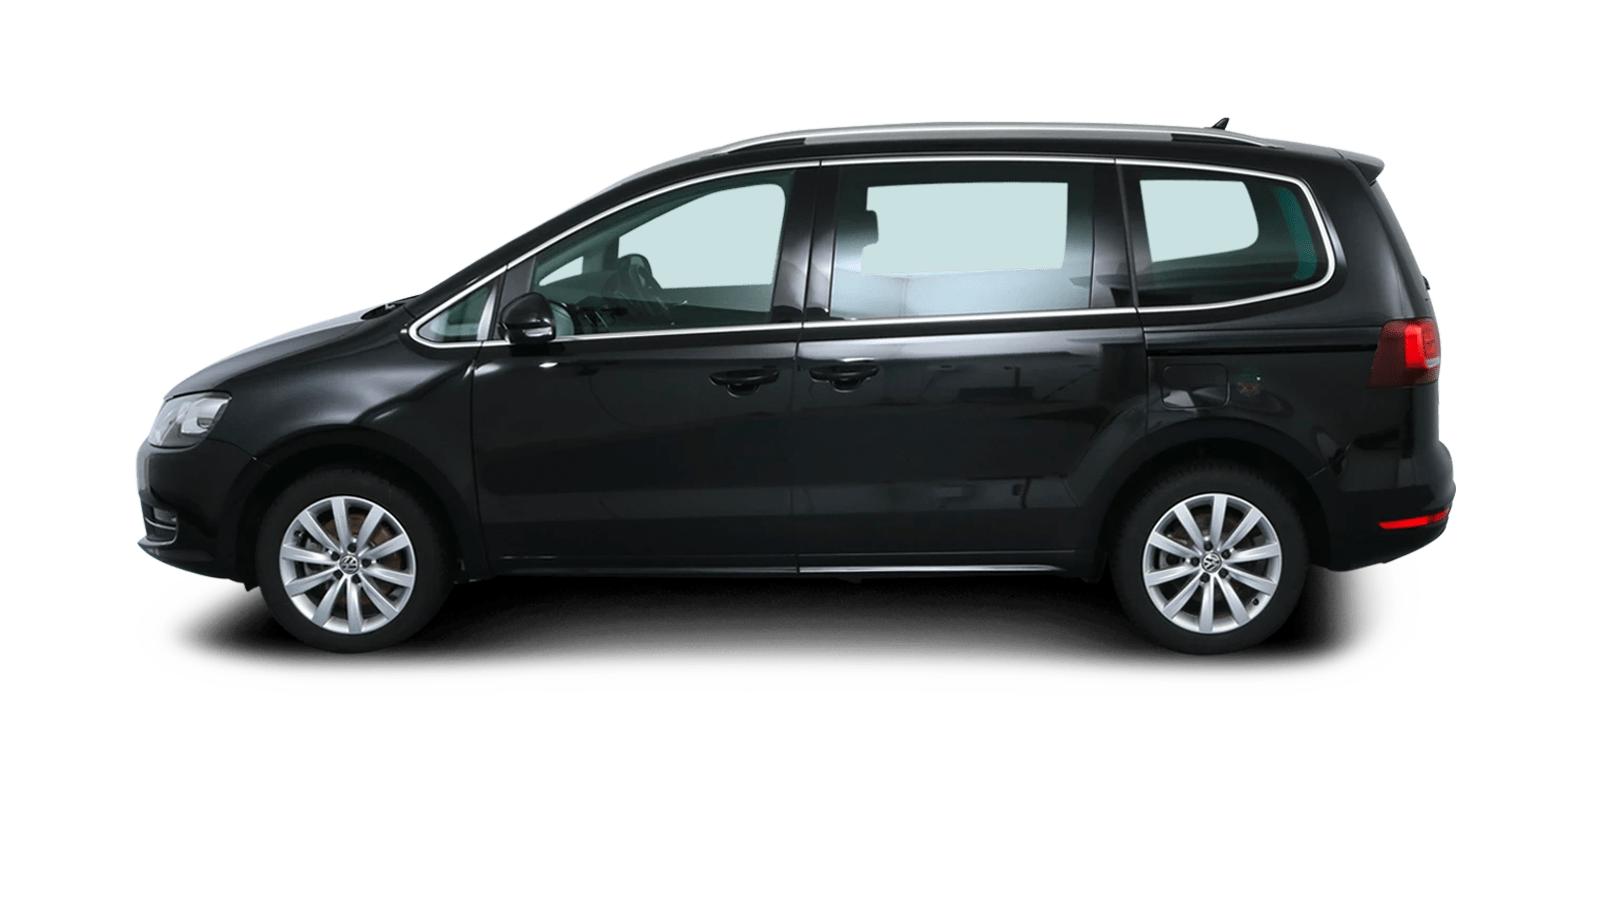 VW Sharan Black back - Clyde car subscription